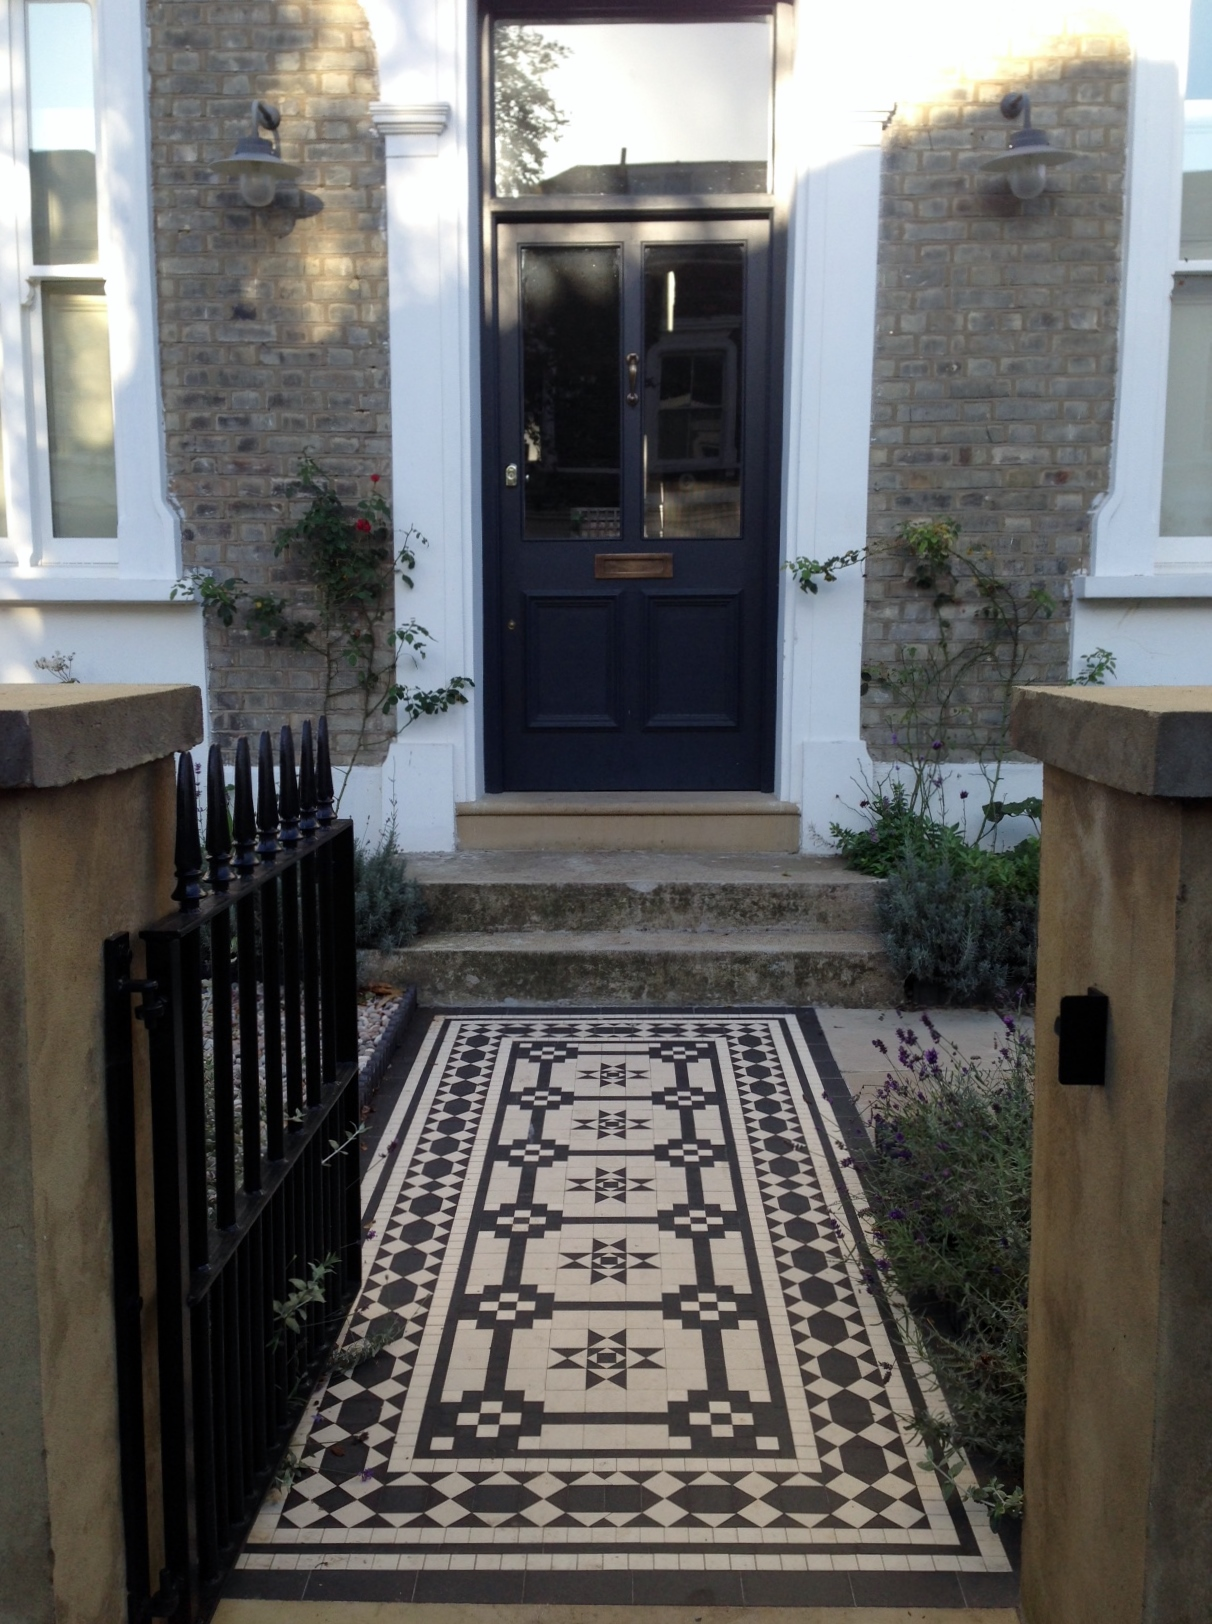 Islington Victorian mosaic tile path York stone sandstone paving wrought iron rails and gate London (35)